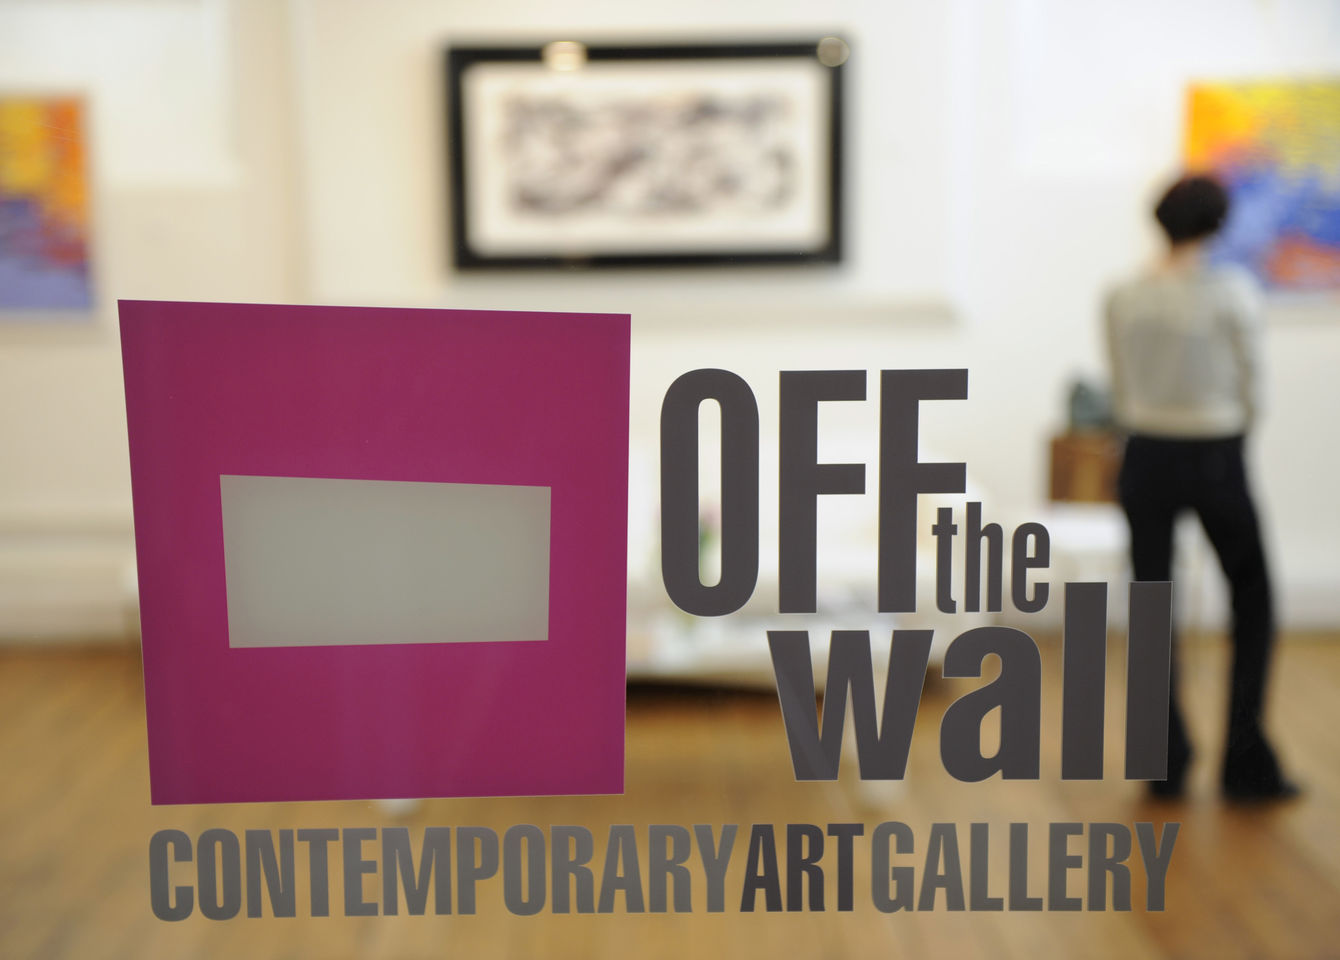 off the wall contemp art gallery.jpeg